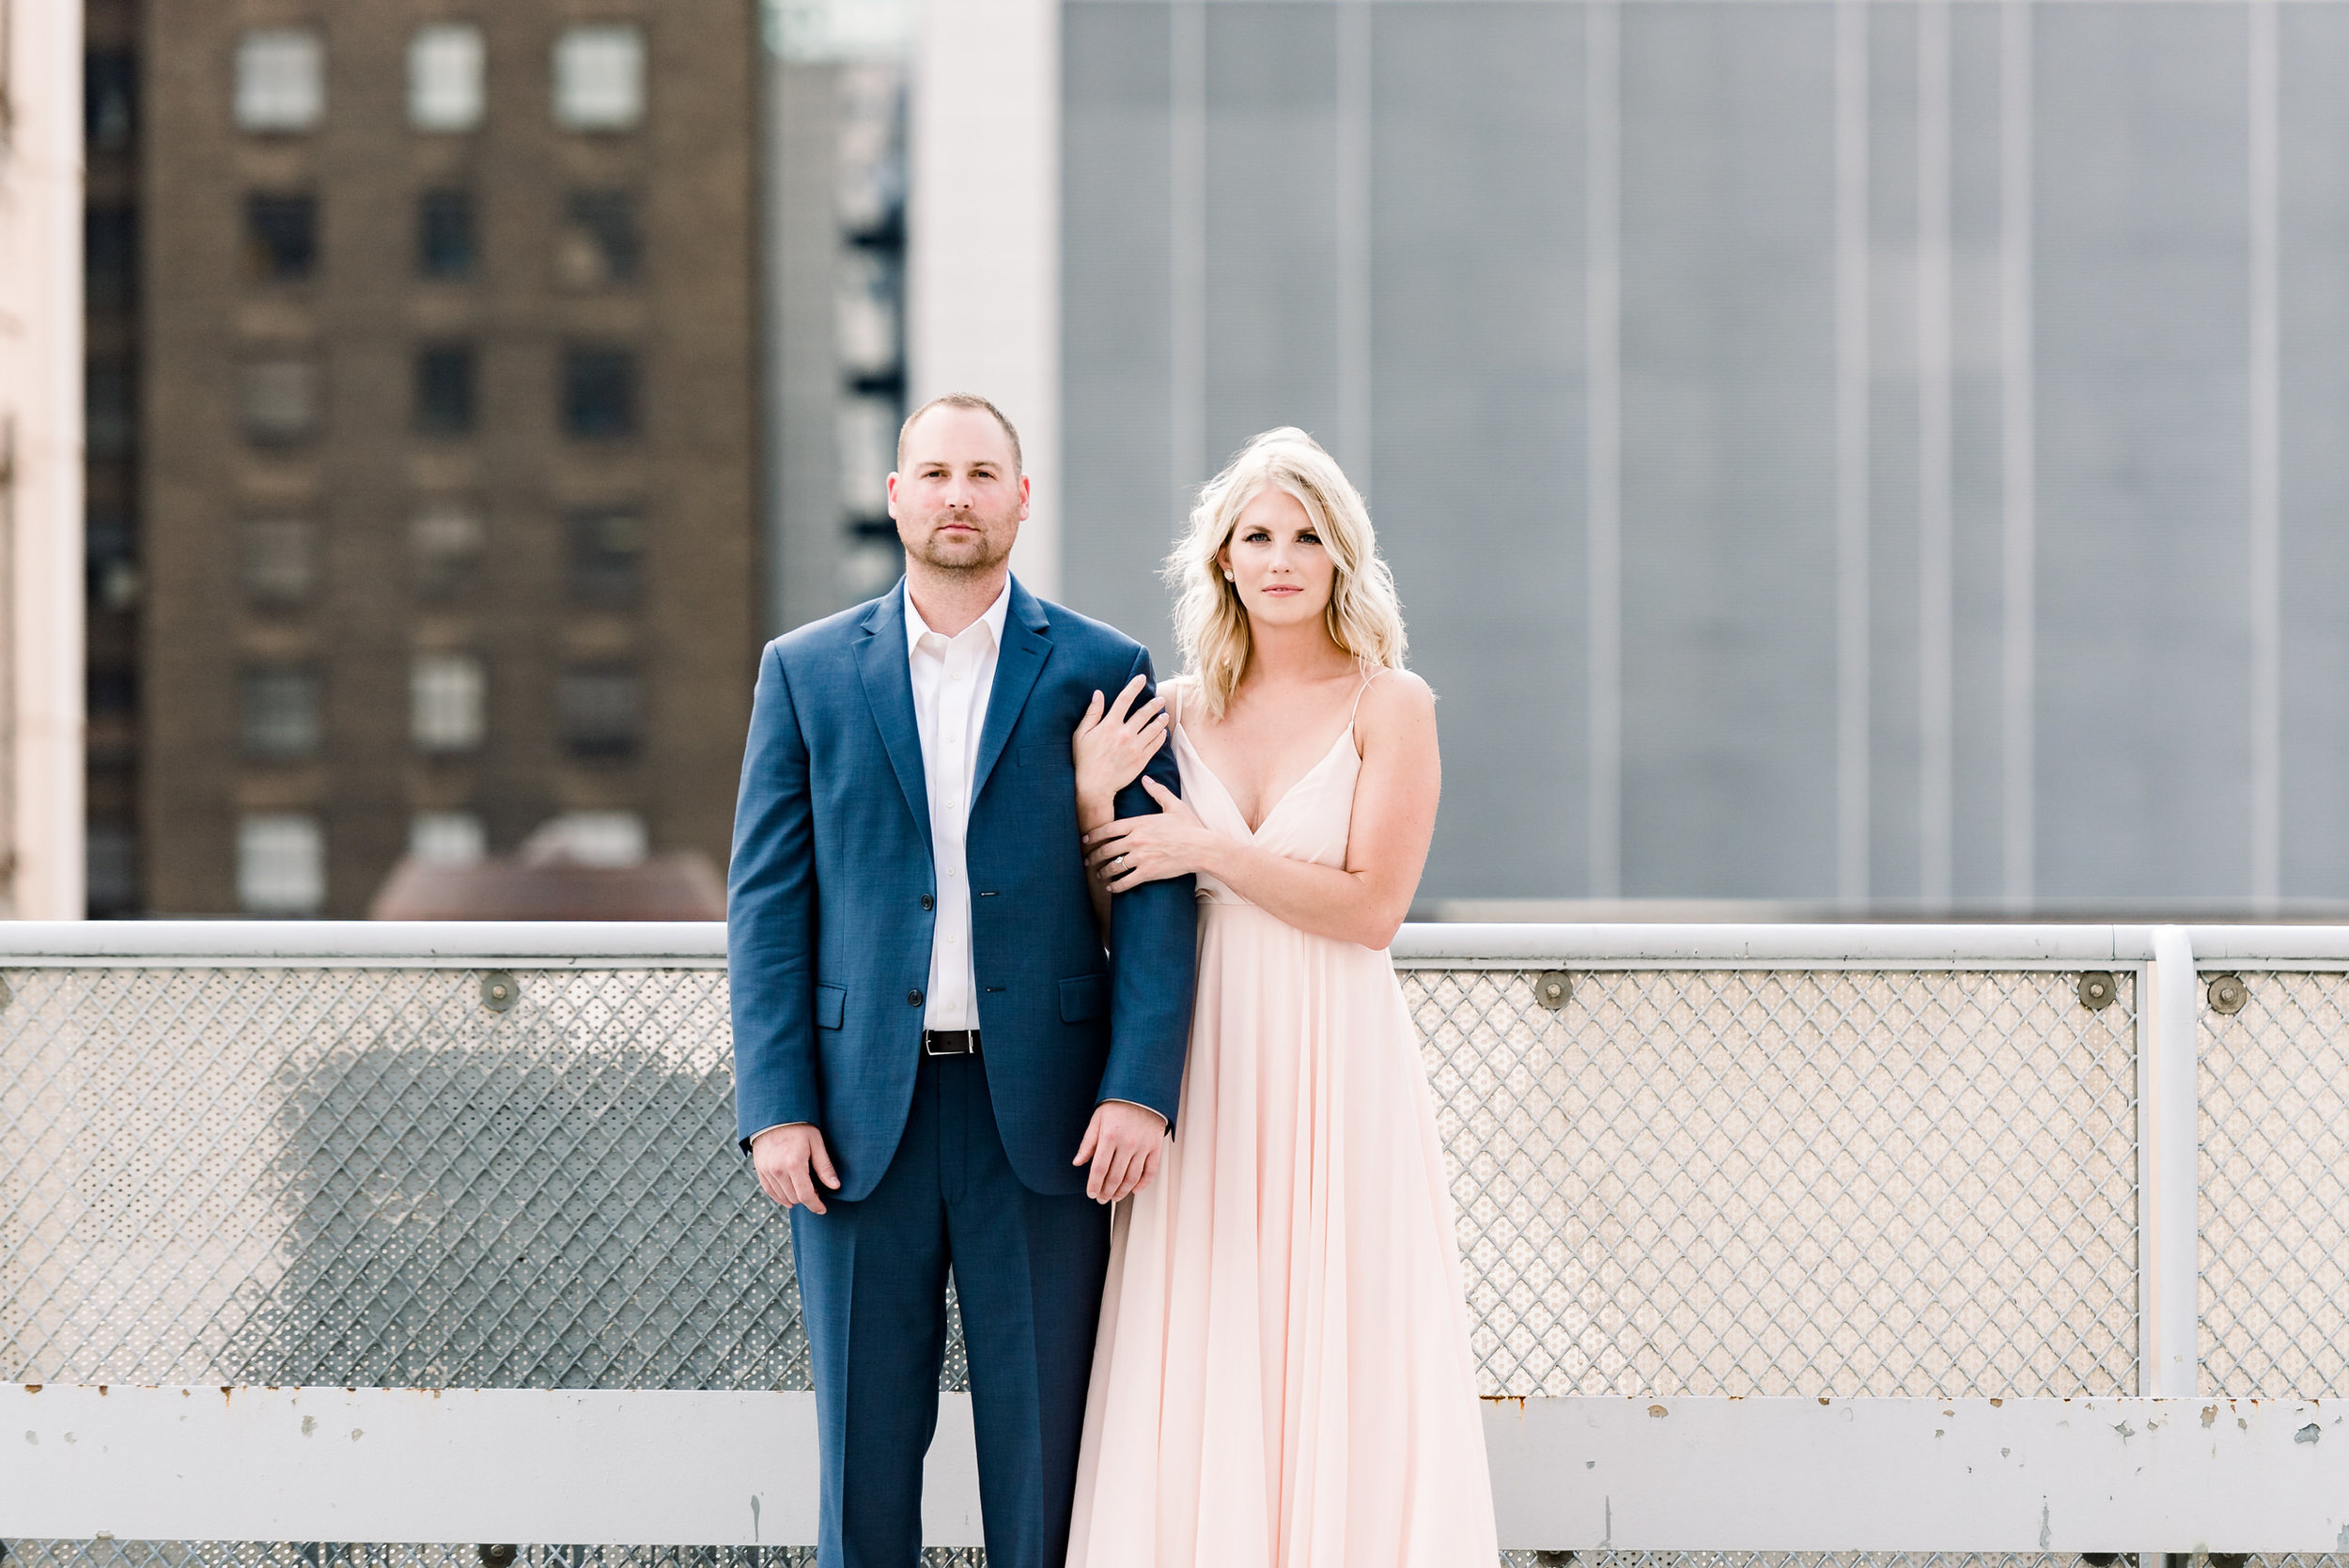 downtown-pittsburgh-rooftop-engagement-session-ashley-reed-photography26.jpg